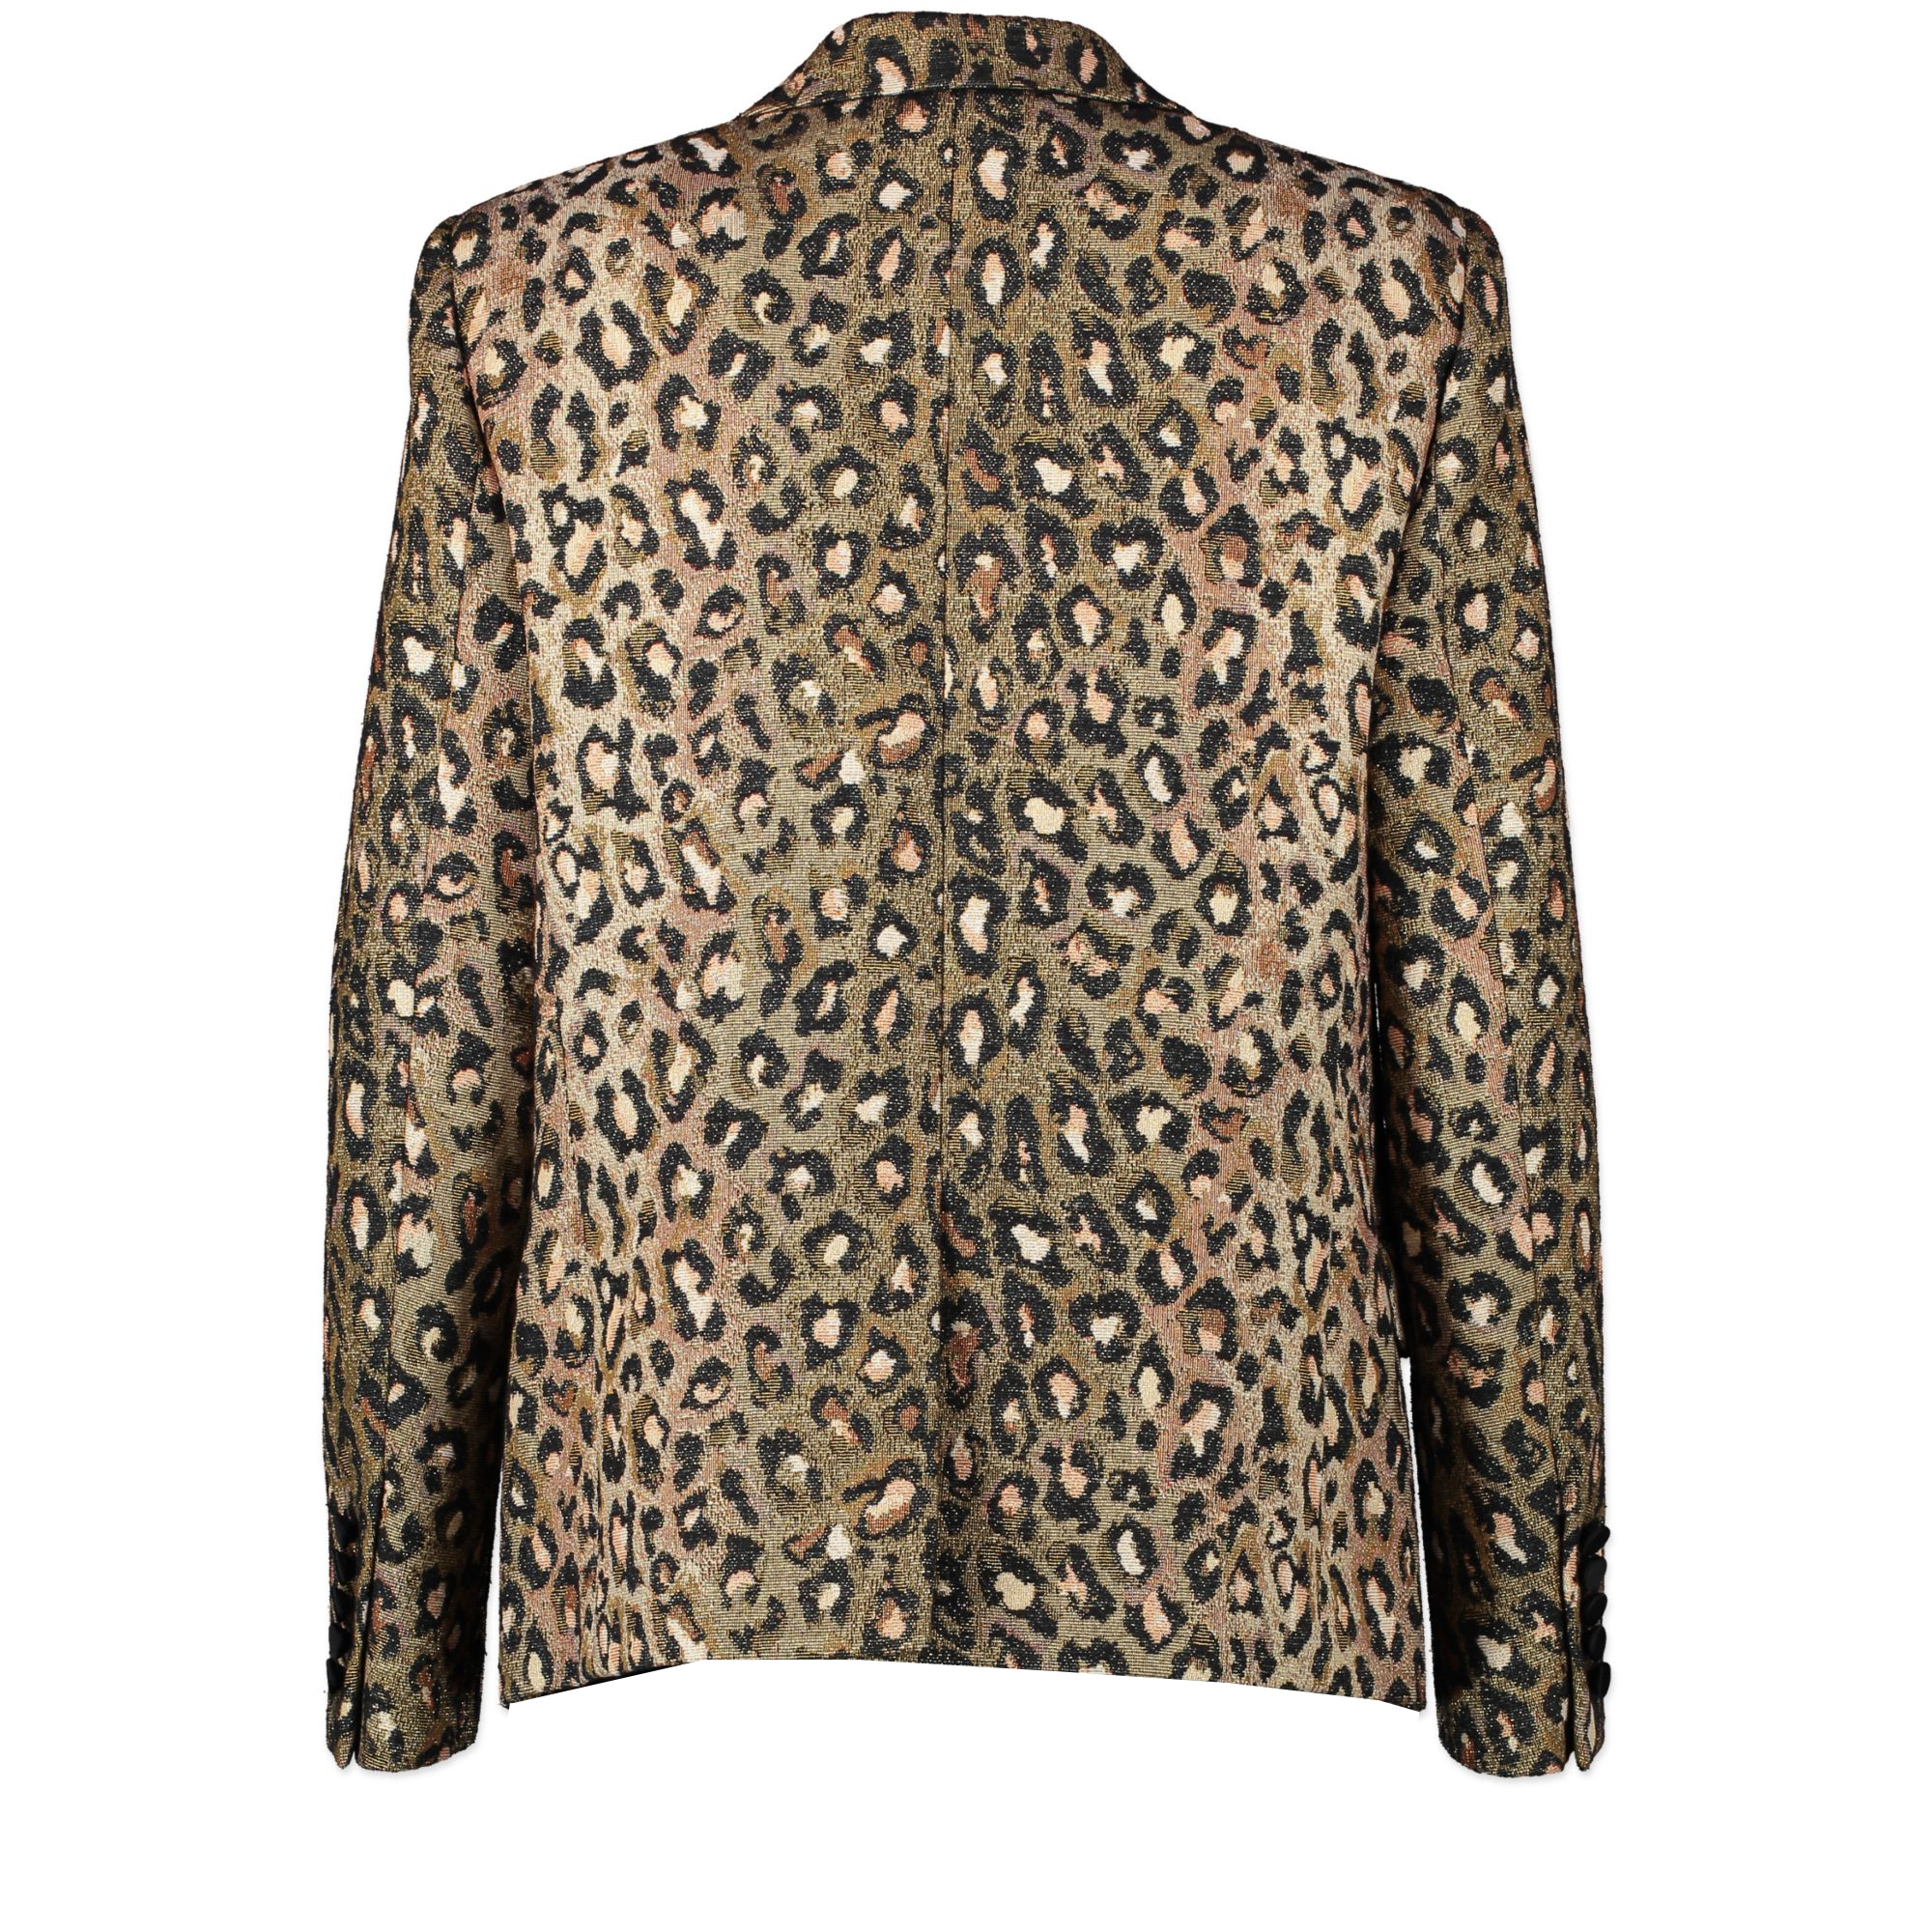 Saint Laurent Leopard Blazer - Size FR 40 for the best price at Labellov secondhand